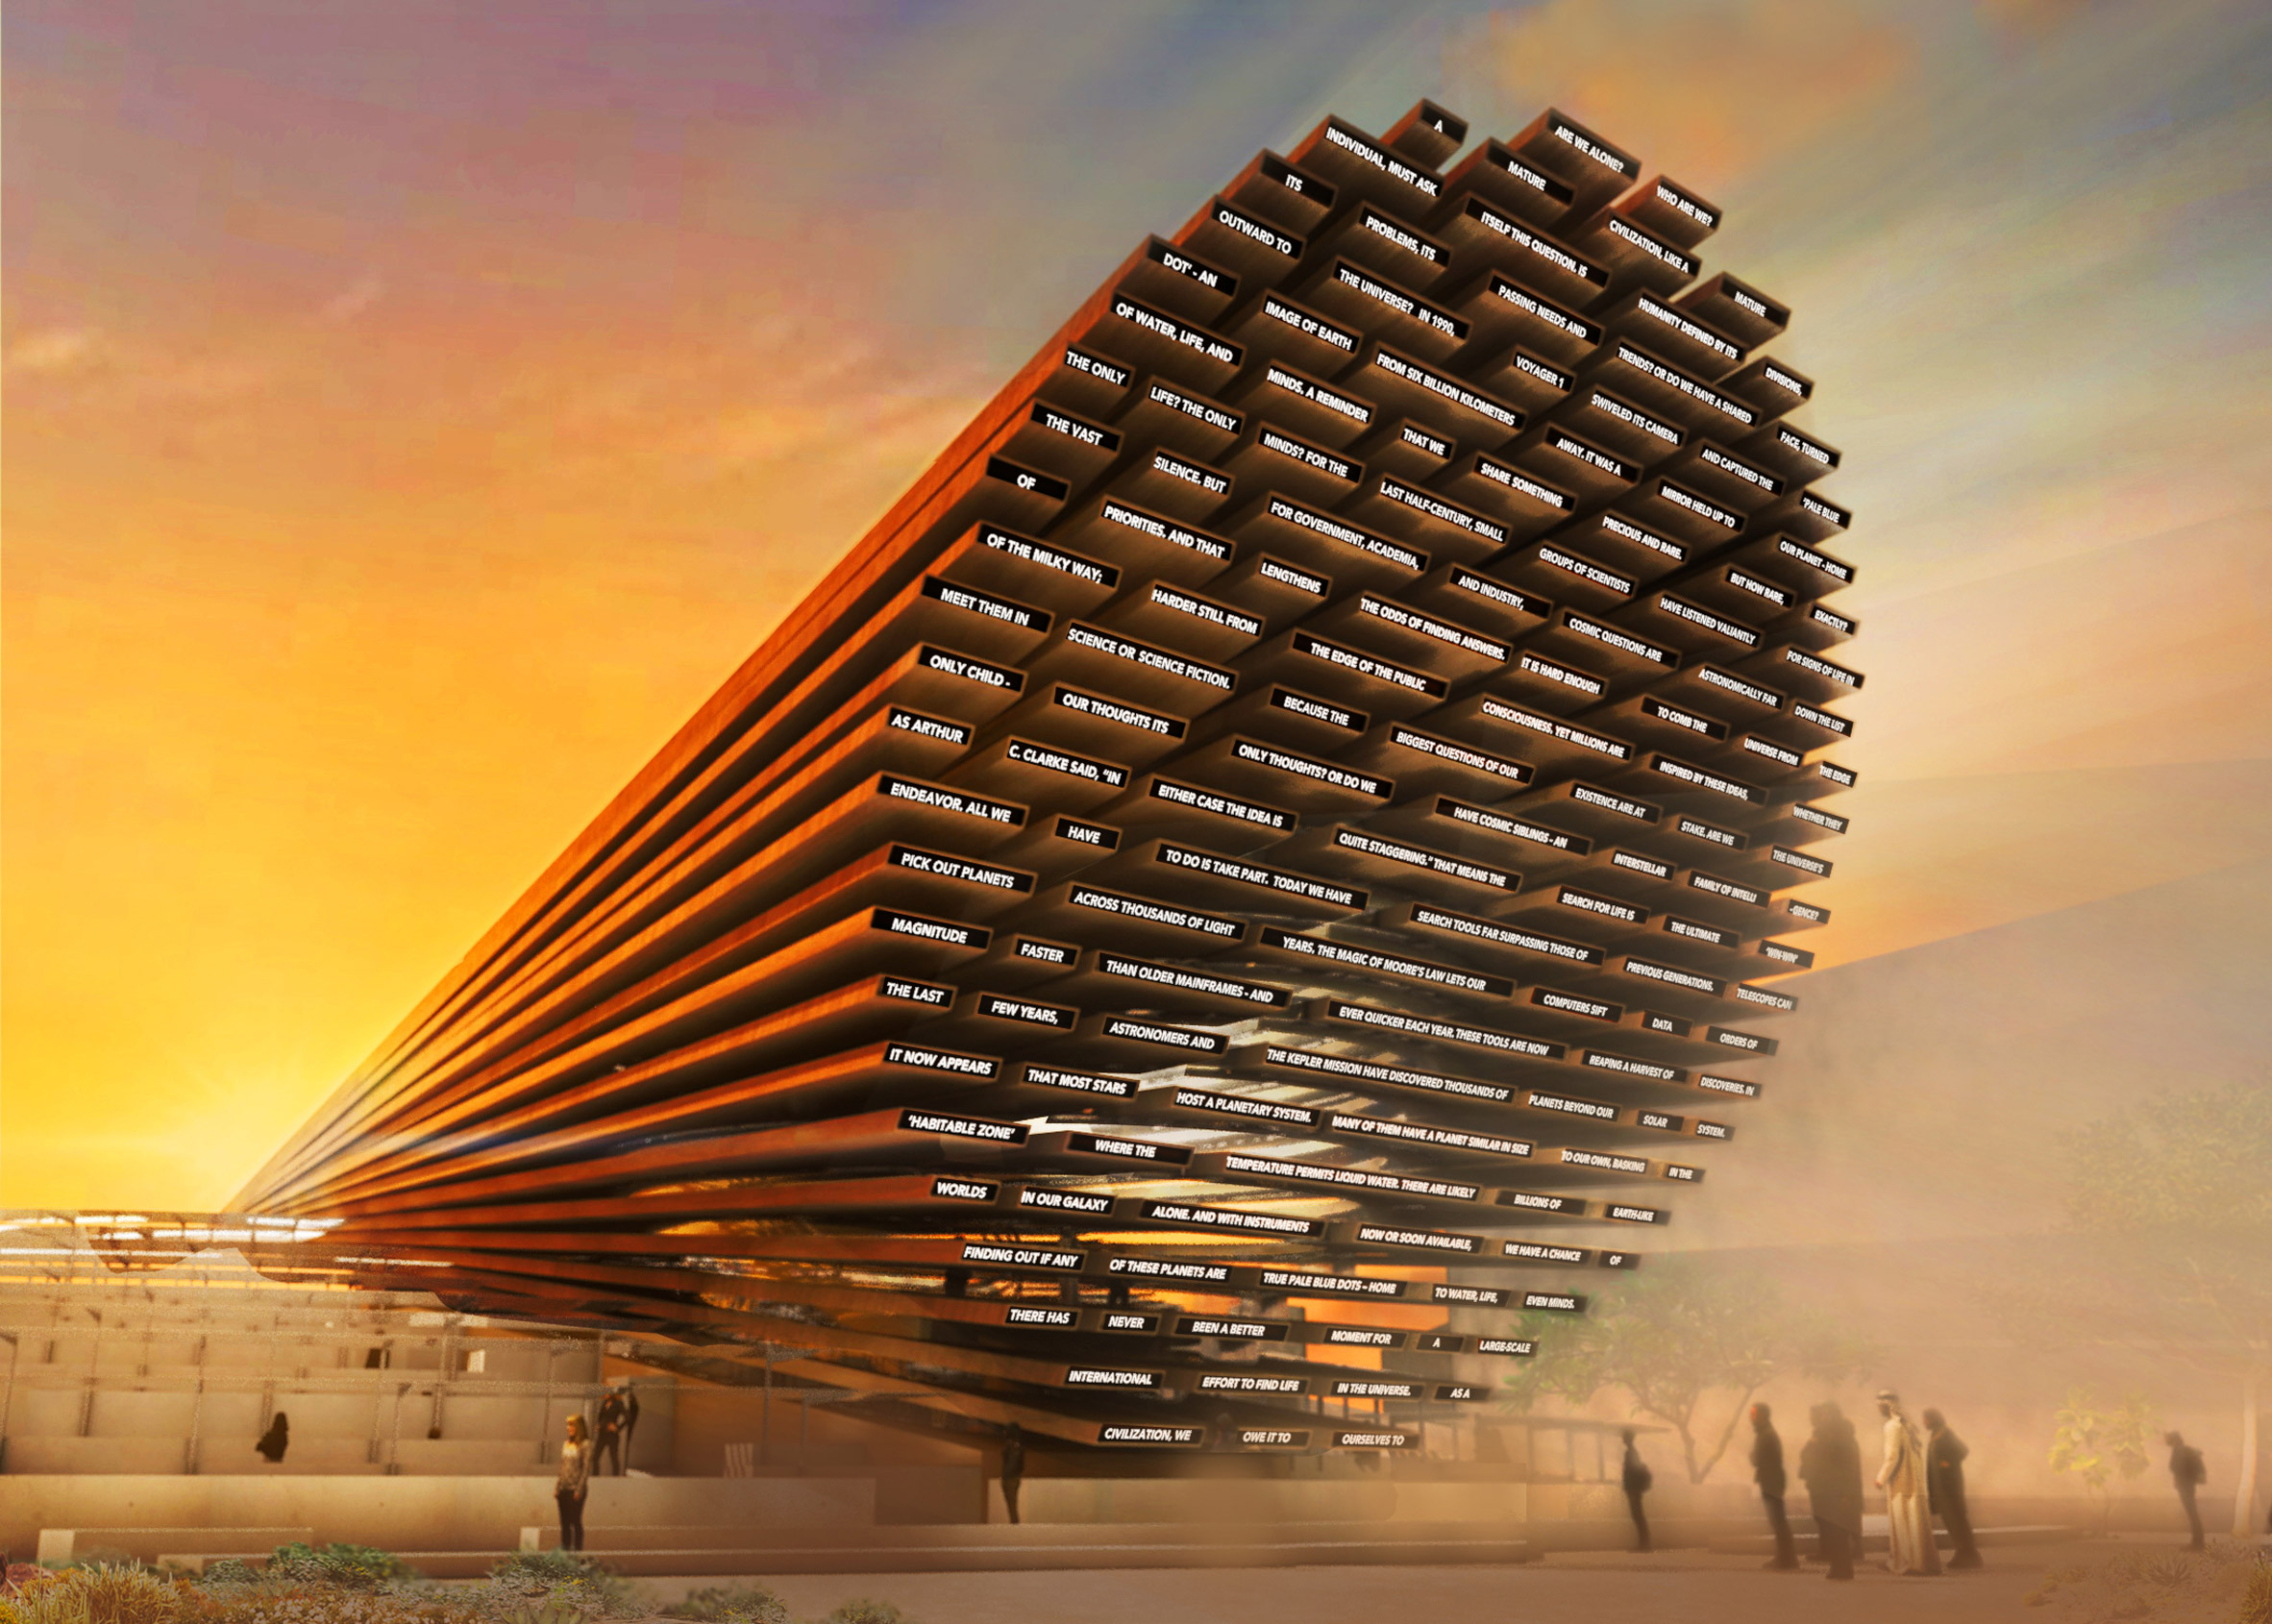 UK Pavilion at Expo 2020 Dubai by Es Devlin OBE